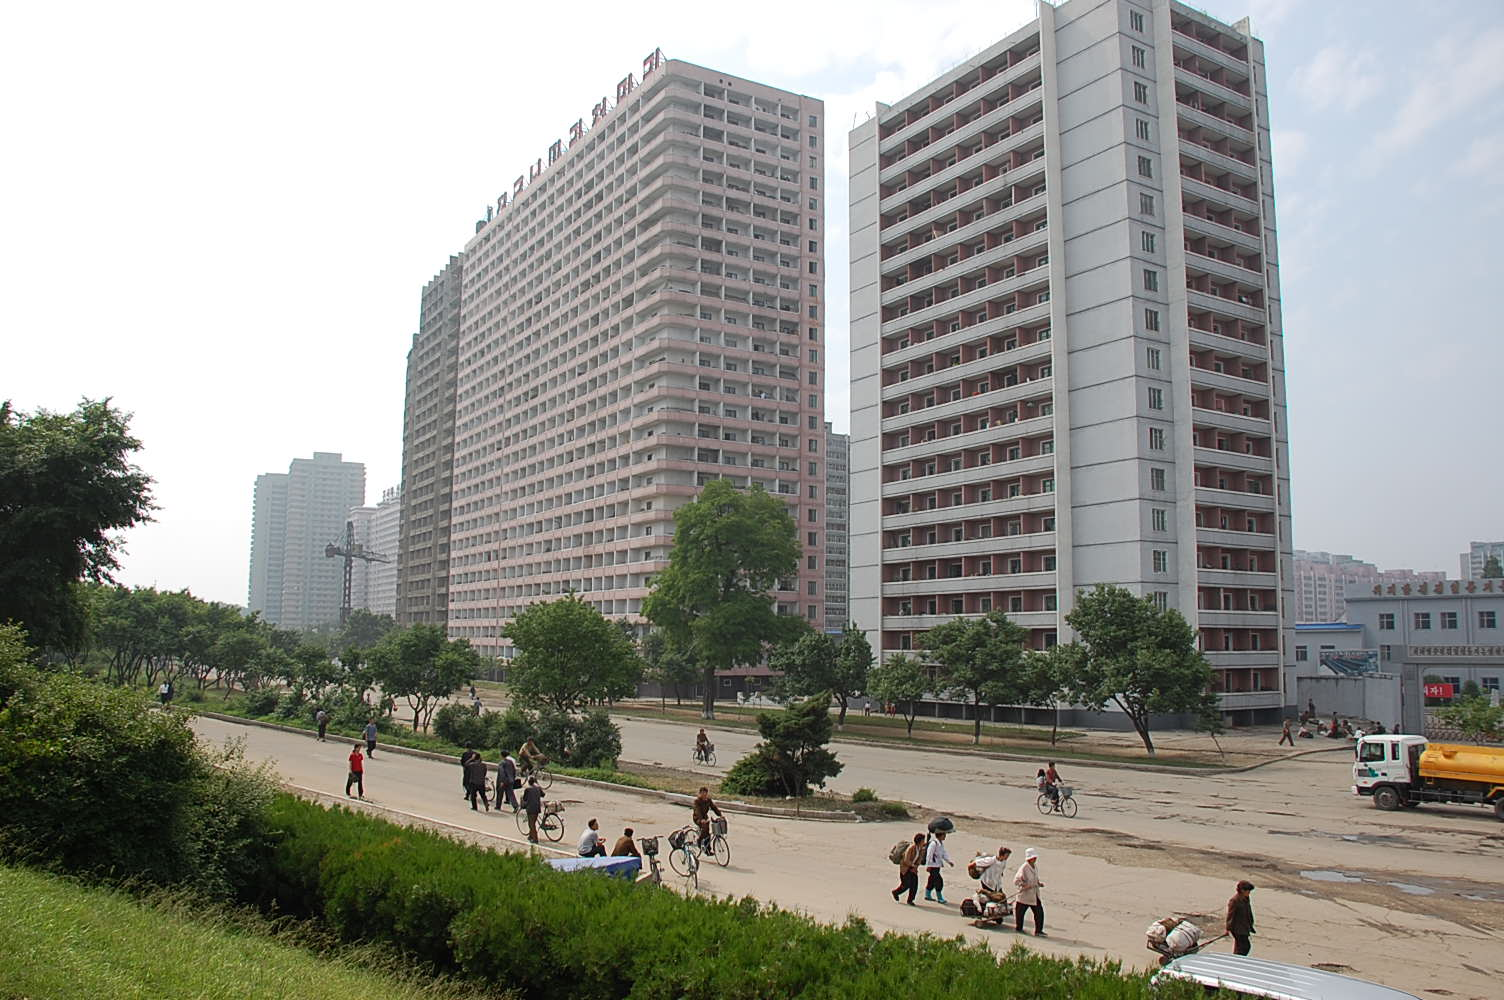 http://upload.wikimedia.org/wikipedia/commons/3/3e/North_Korea-Pyongyang-Buildings_and_passengers-01.jpg